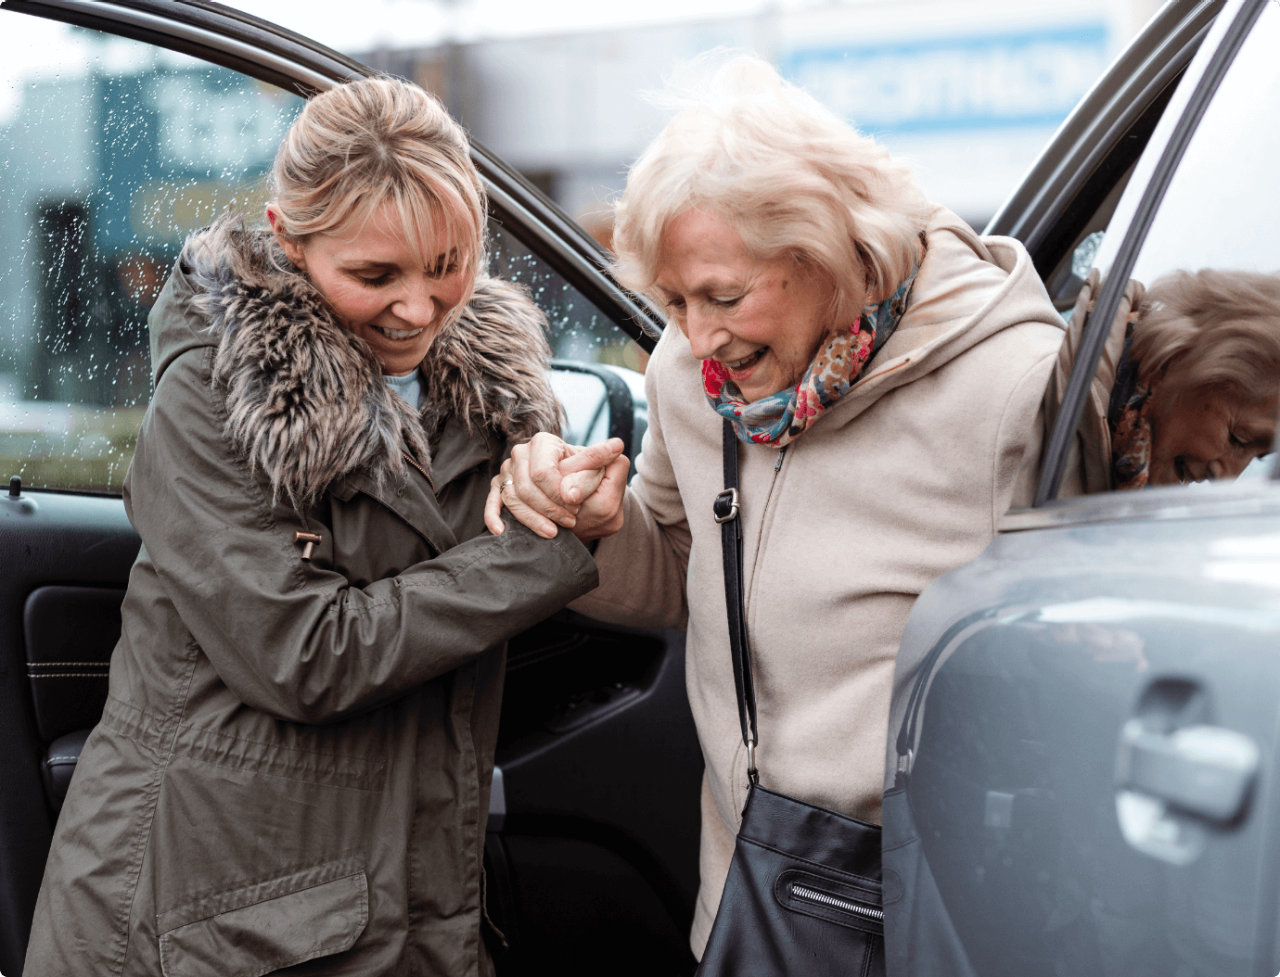 A woman helping another woman to get out of a car.